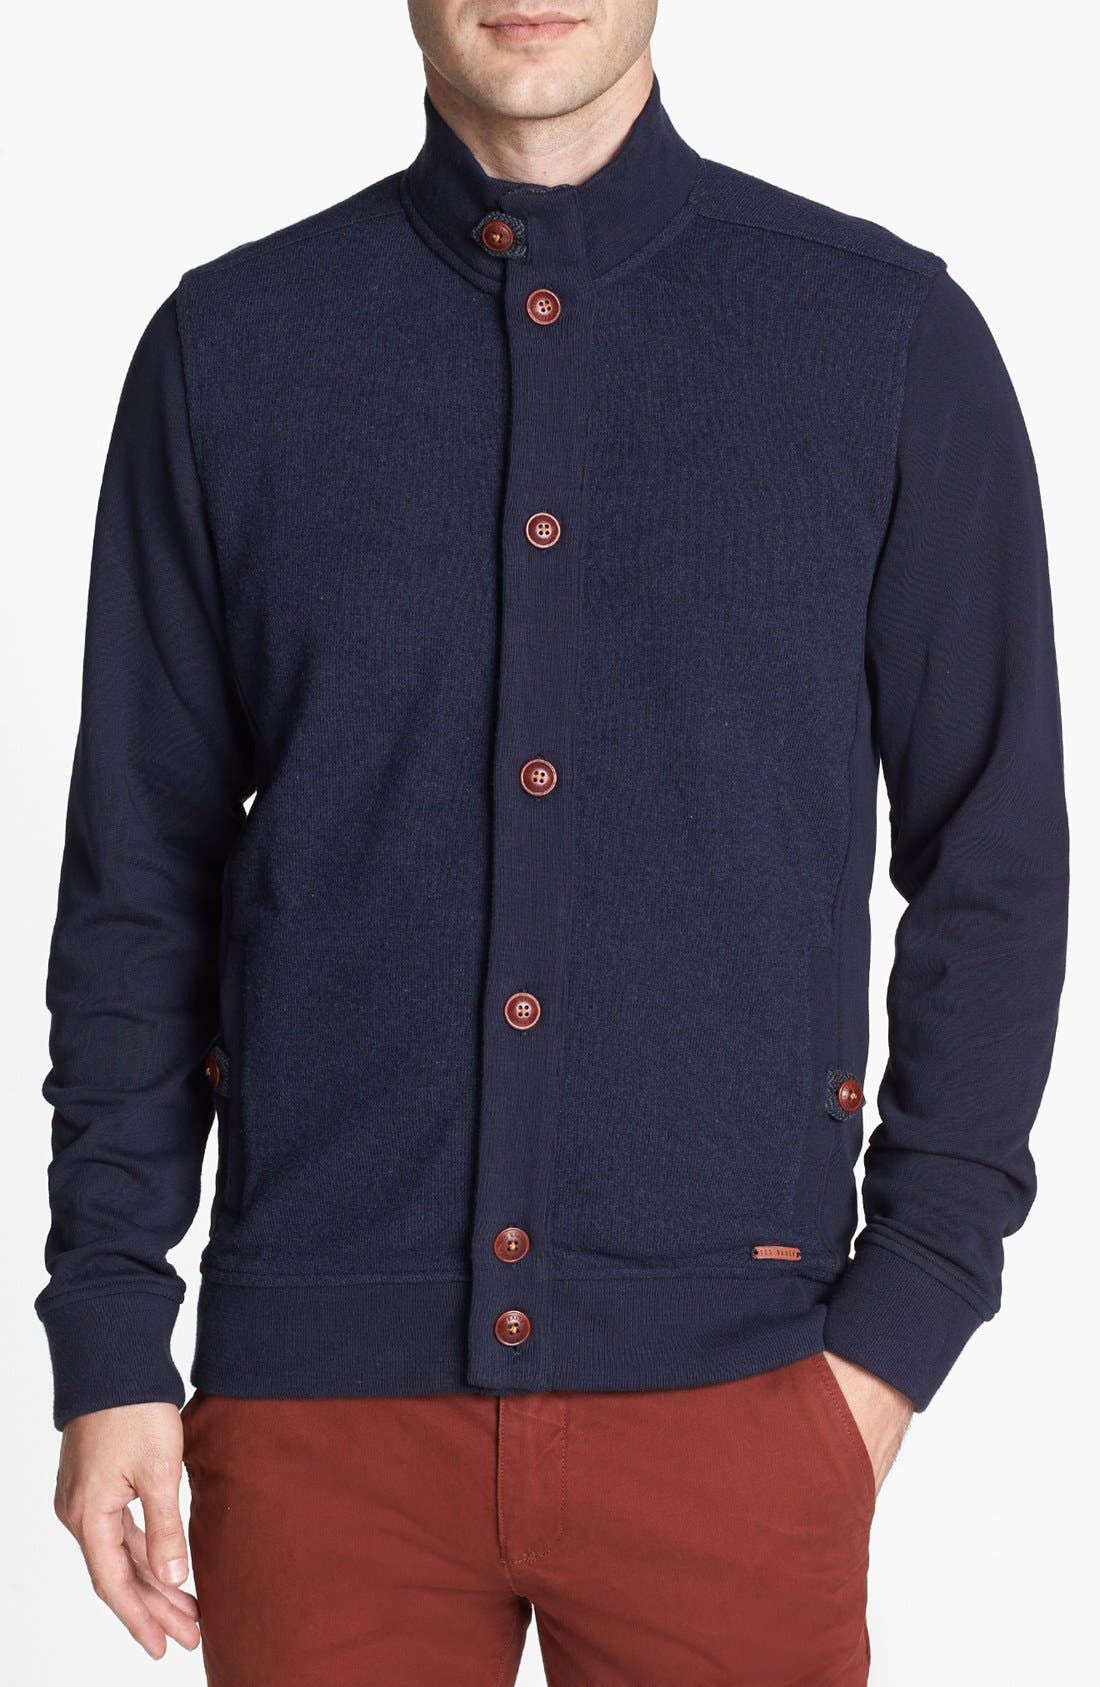 Alternate Image 1 Selected - Ted Baker London 'Doolan' Jersey Cardigan